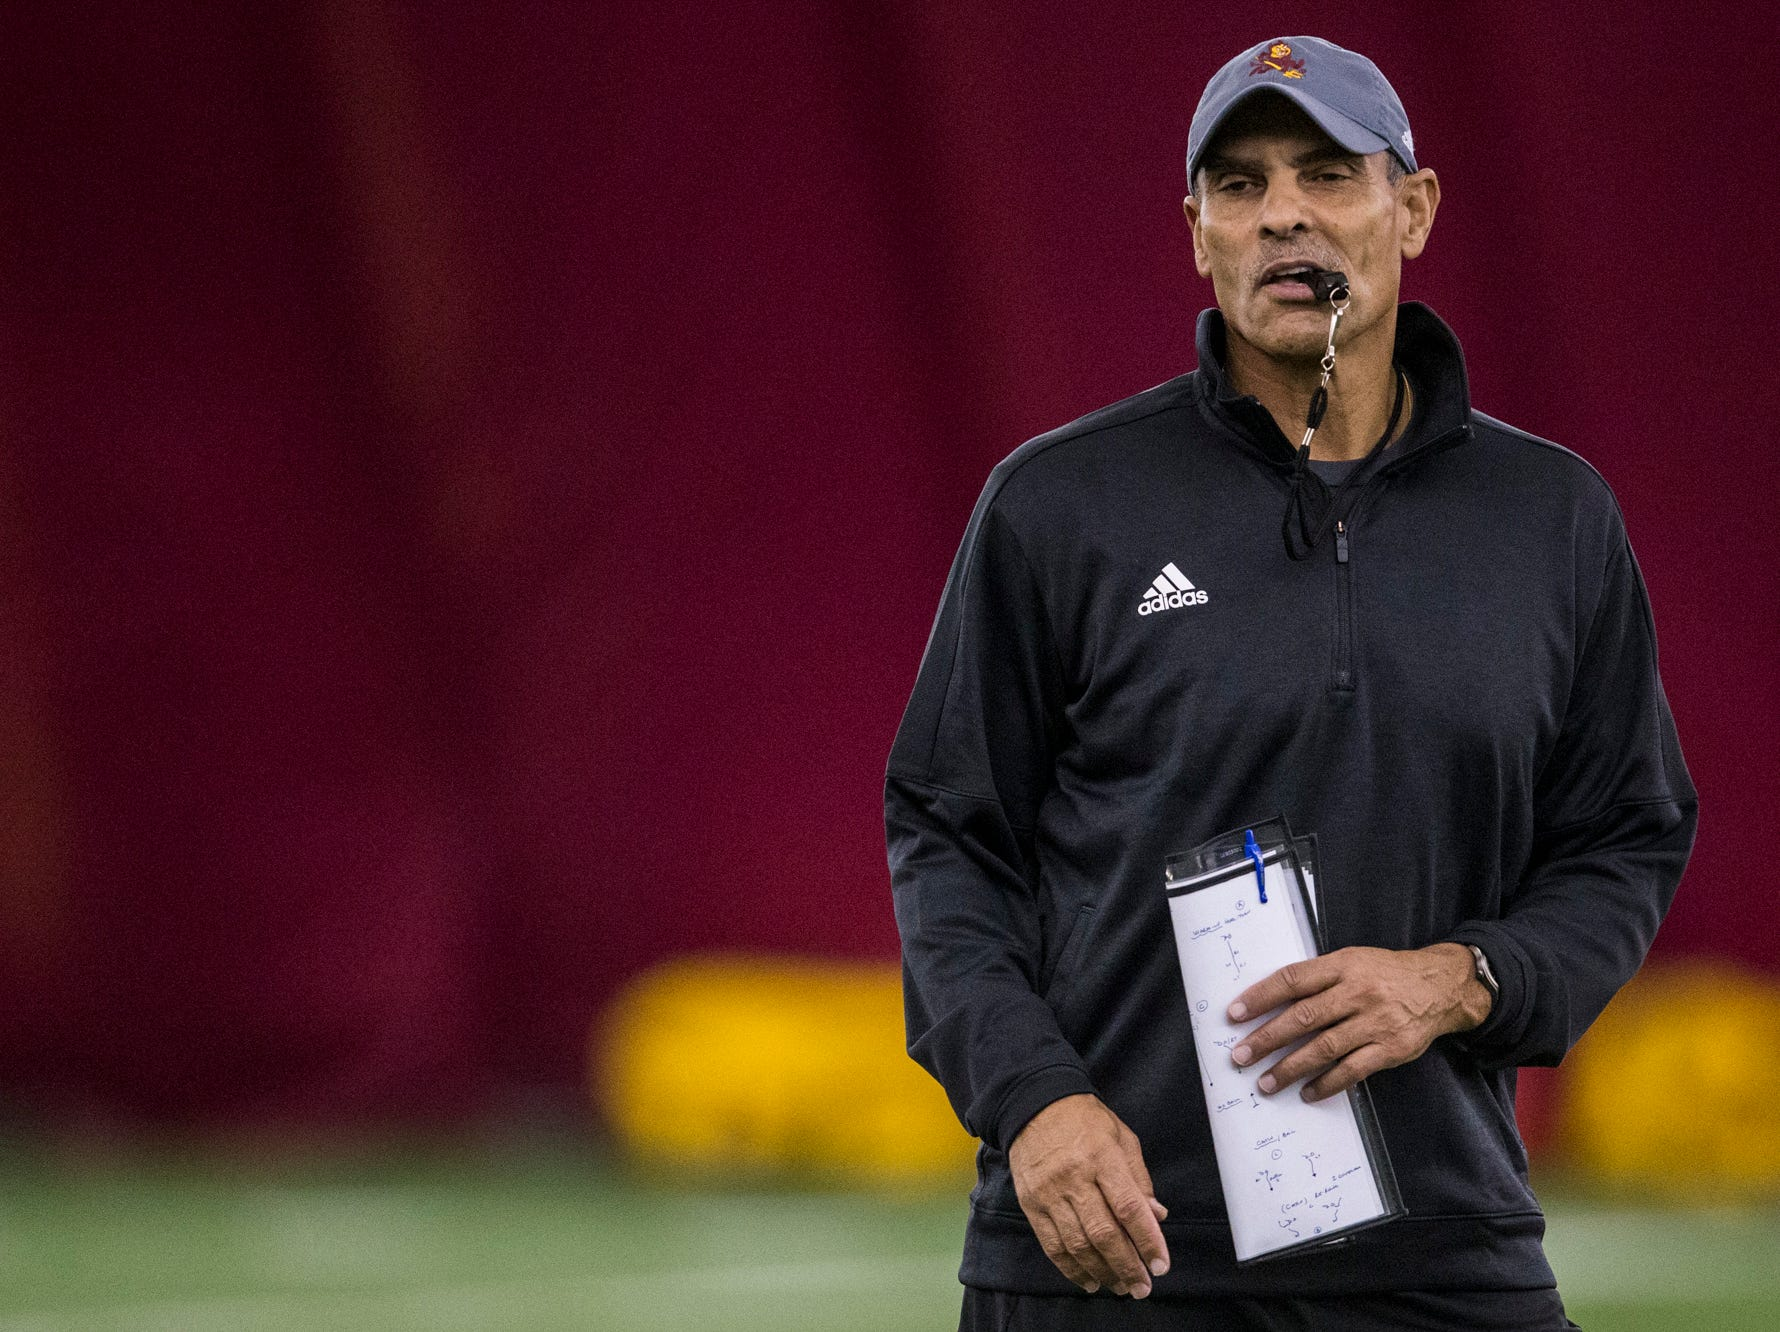 Head coach Herm Edwards watches practice on Tuesday, Feb. 5, 2019, at the Verde Dickey Dome in Tempe, Ariz.